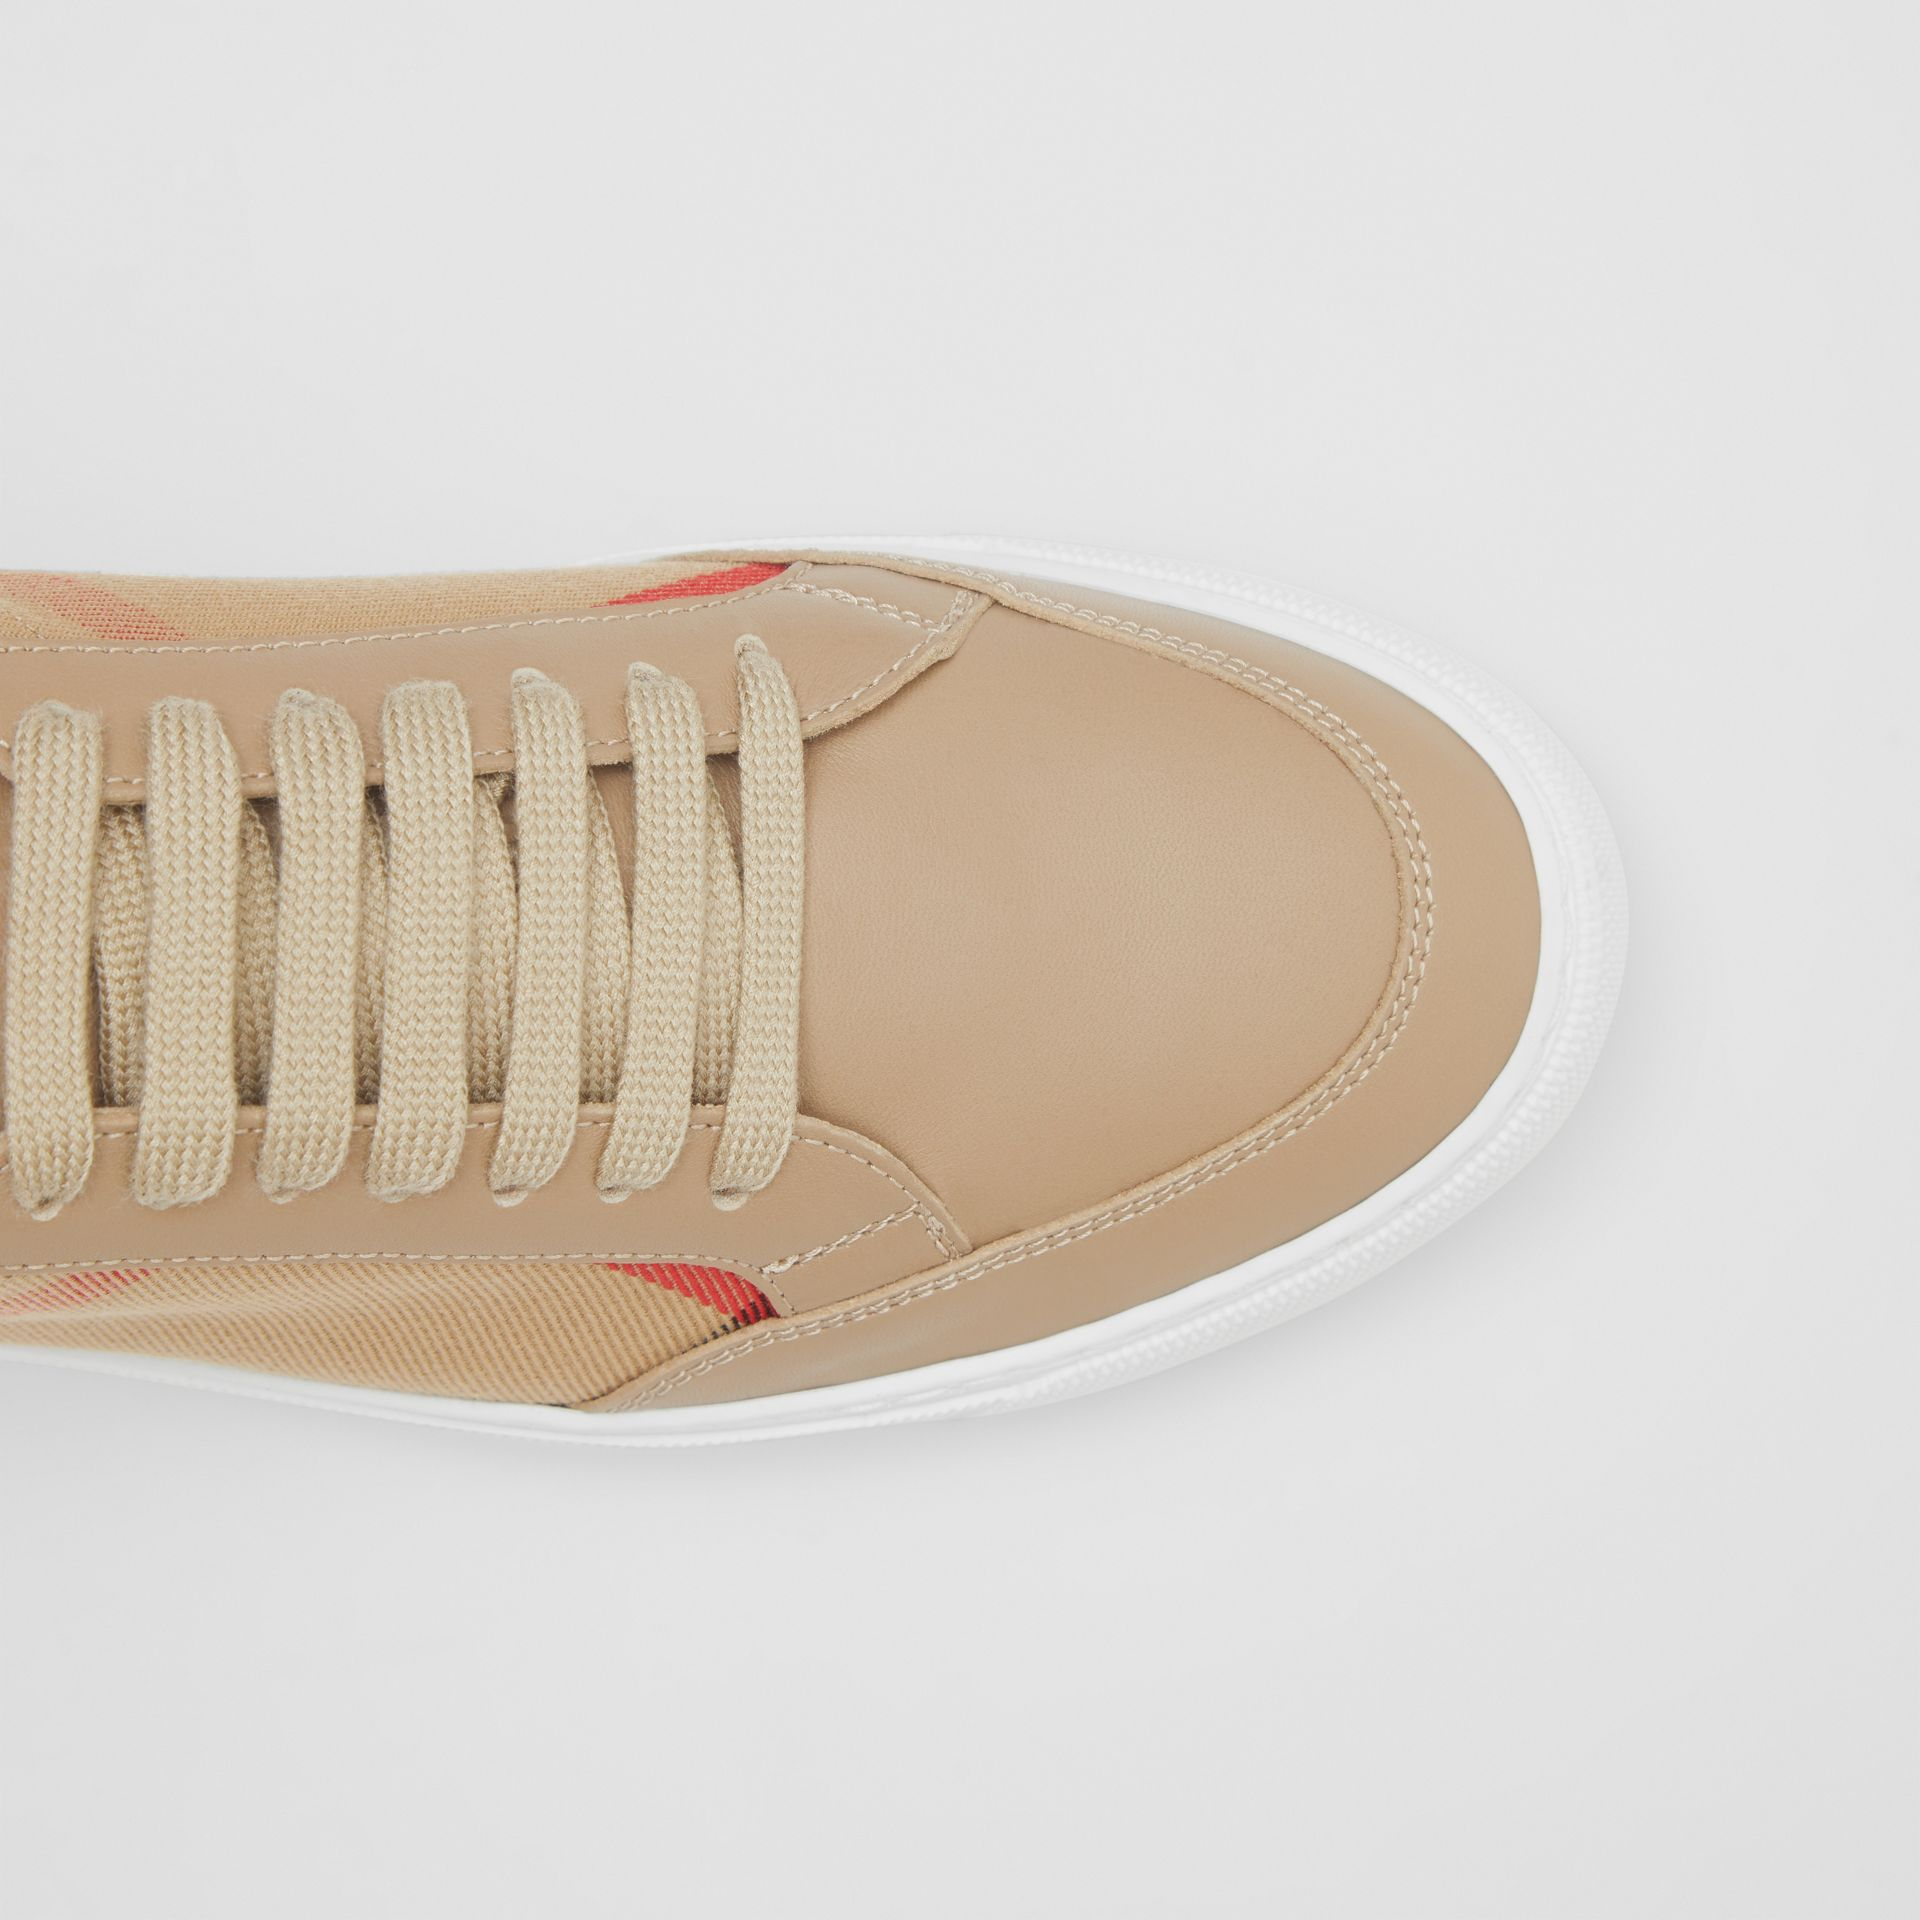 House Check and Leather Sneakers in Tan - Women | Burberry - gallery image 1